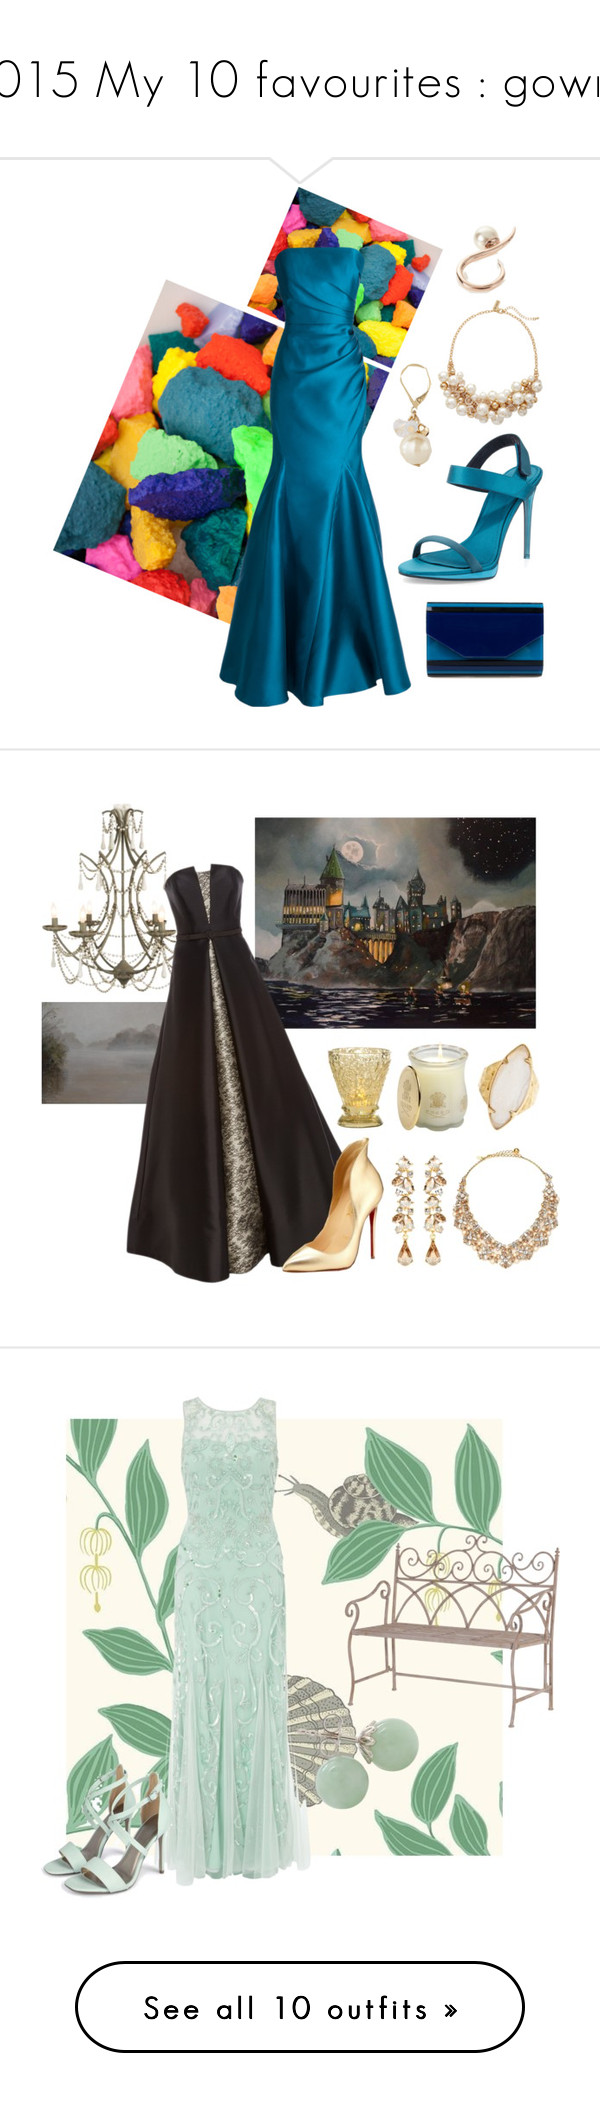 """""""2015 My 10 favourites : gowns"""" by mia-de-neef ❤ liked on Polyvore featuring Burberry, Badgley Mischka, The Limited, Ryan Storer, Ben-Amun, Charleston Artist Collective, Reem Acra, Christian Louboutin, Kate Spade and HEATHER BENJAMIN"""